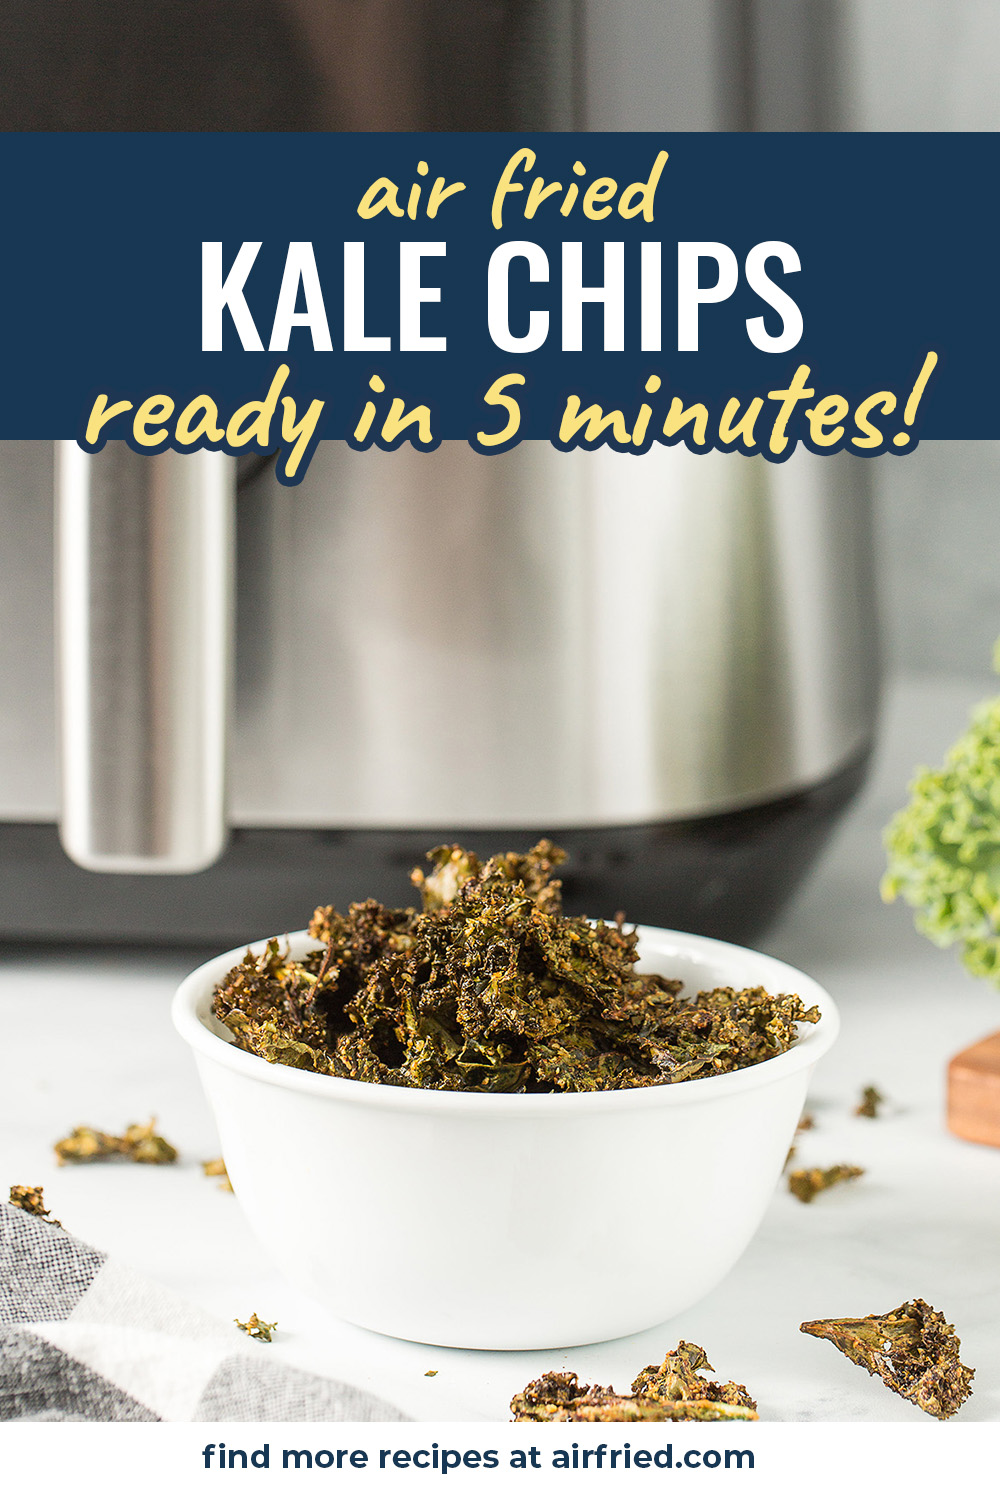 Kale chips are a crispy low carb way to enjoy a good snack during a movie! #airfried #easyrecipes #ketosnacks